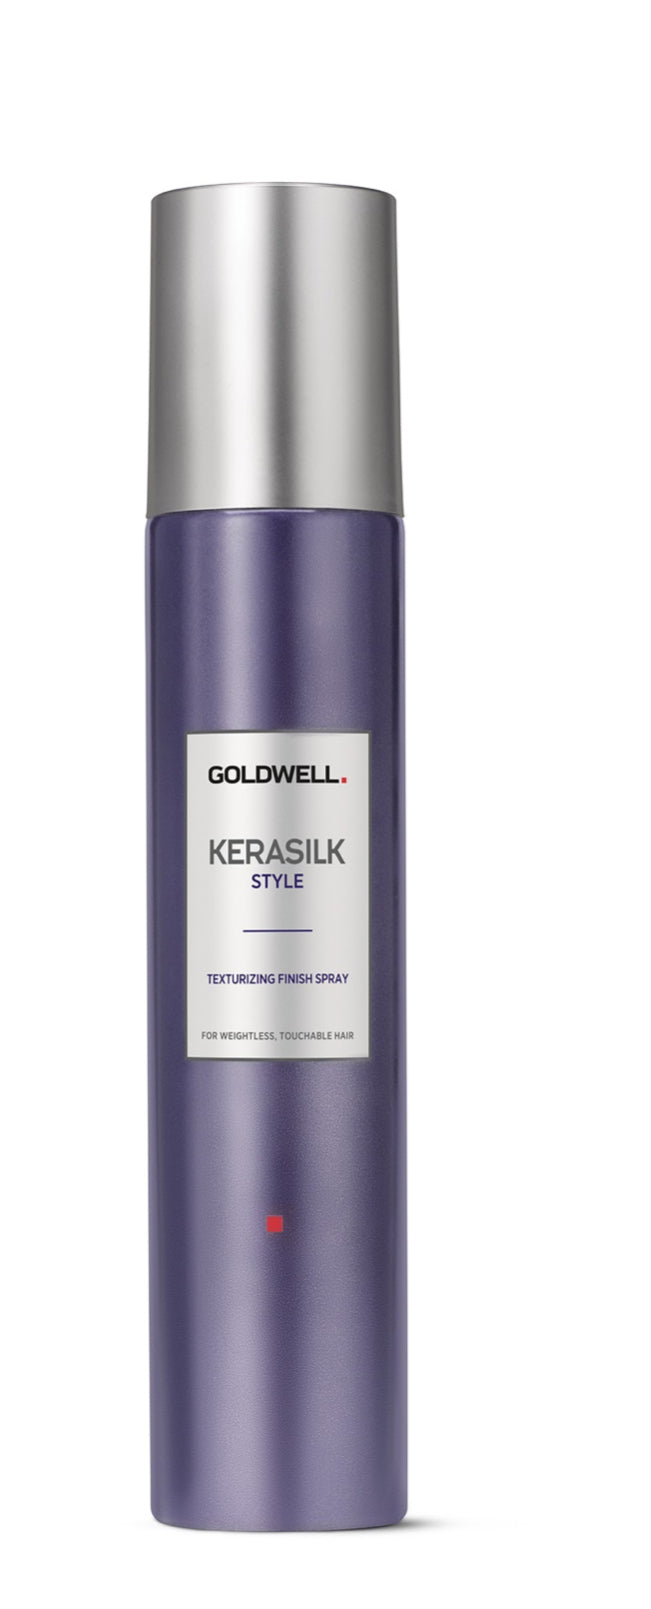 Kerasilk style texturising finish spray. (200 ml)